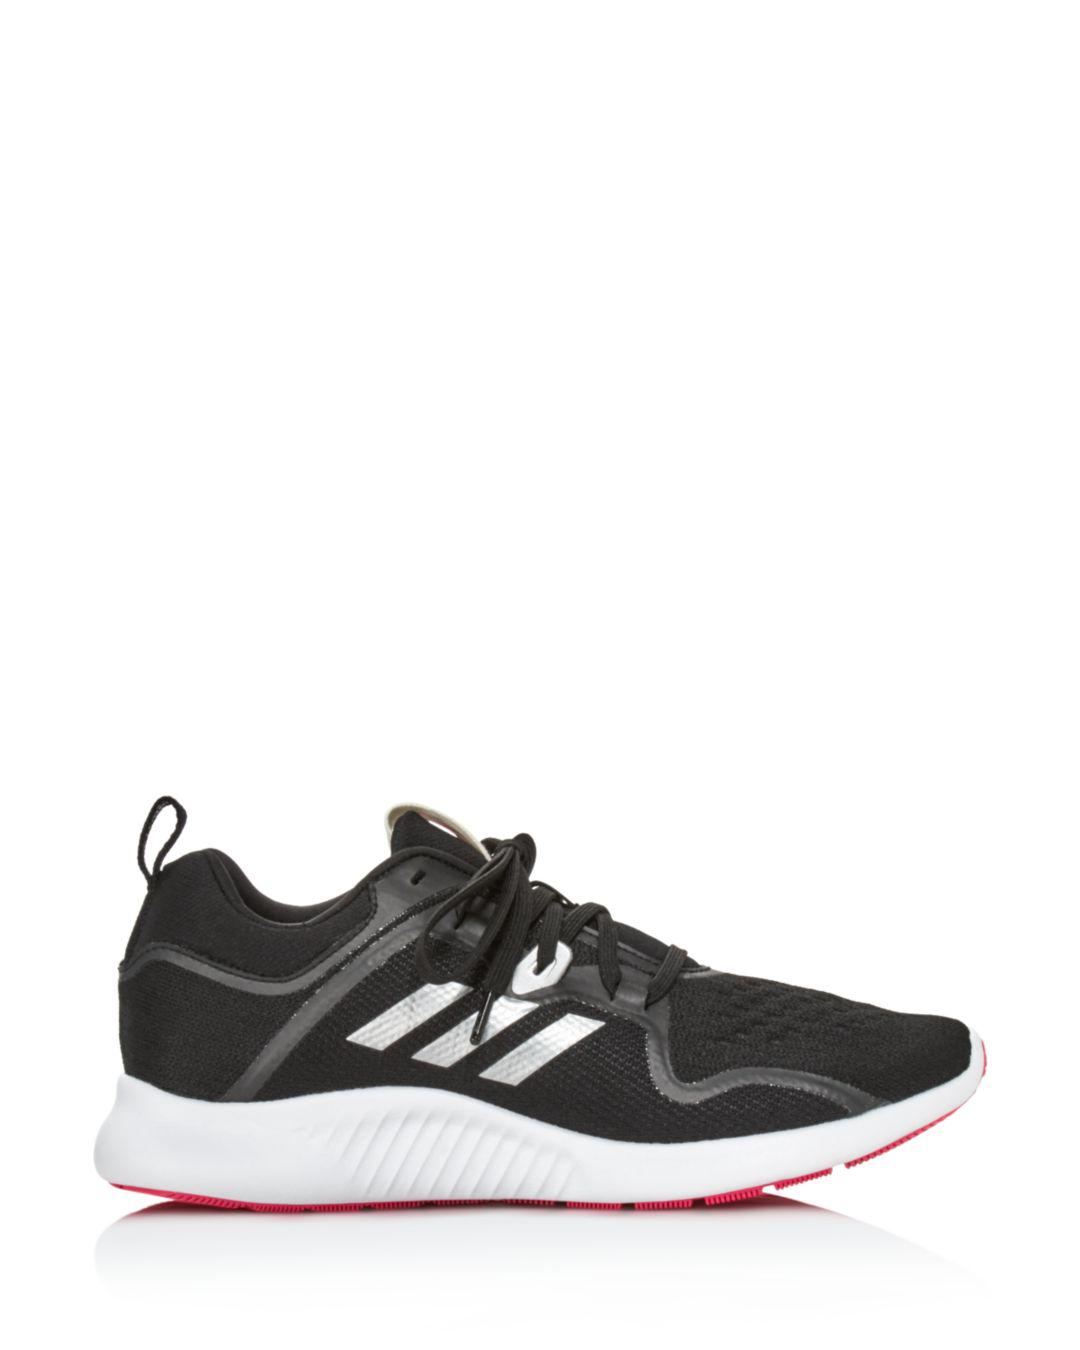 sale retailer 6f9eb 3ee1d Adidas Womens Edgebounce Mesh Lace Up Sneakers in Black - Ly